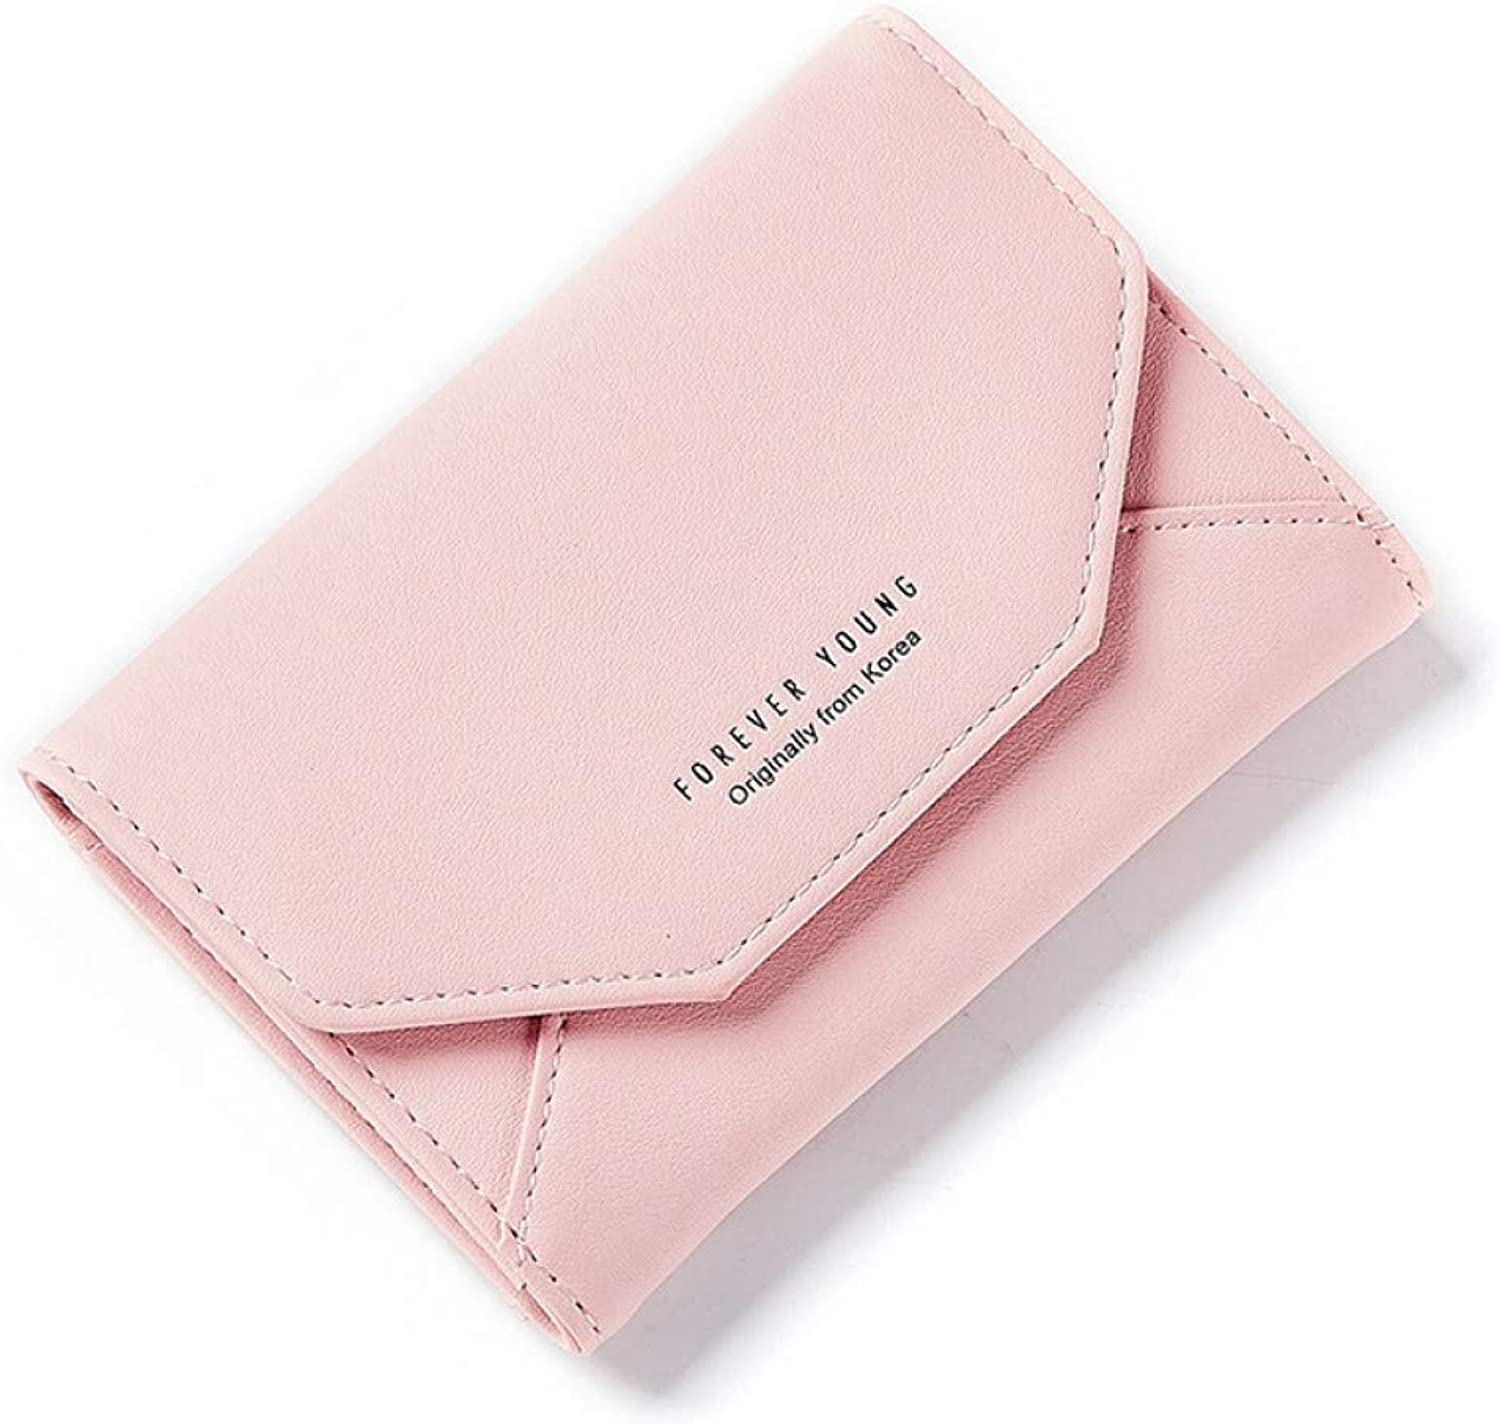 KHGUDS Women Small Wallet Card Holder in Back Coin Purses Female Slim Purse Ladies Wallet Carteira